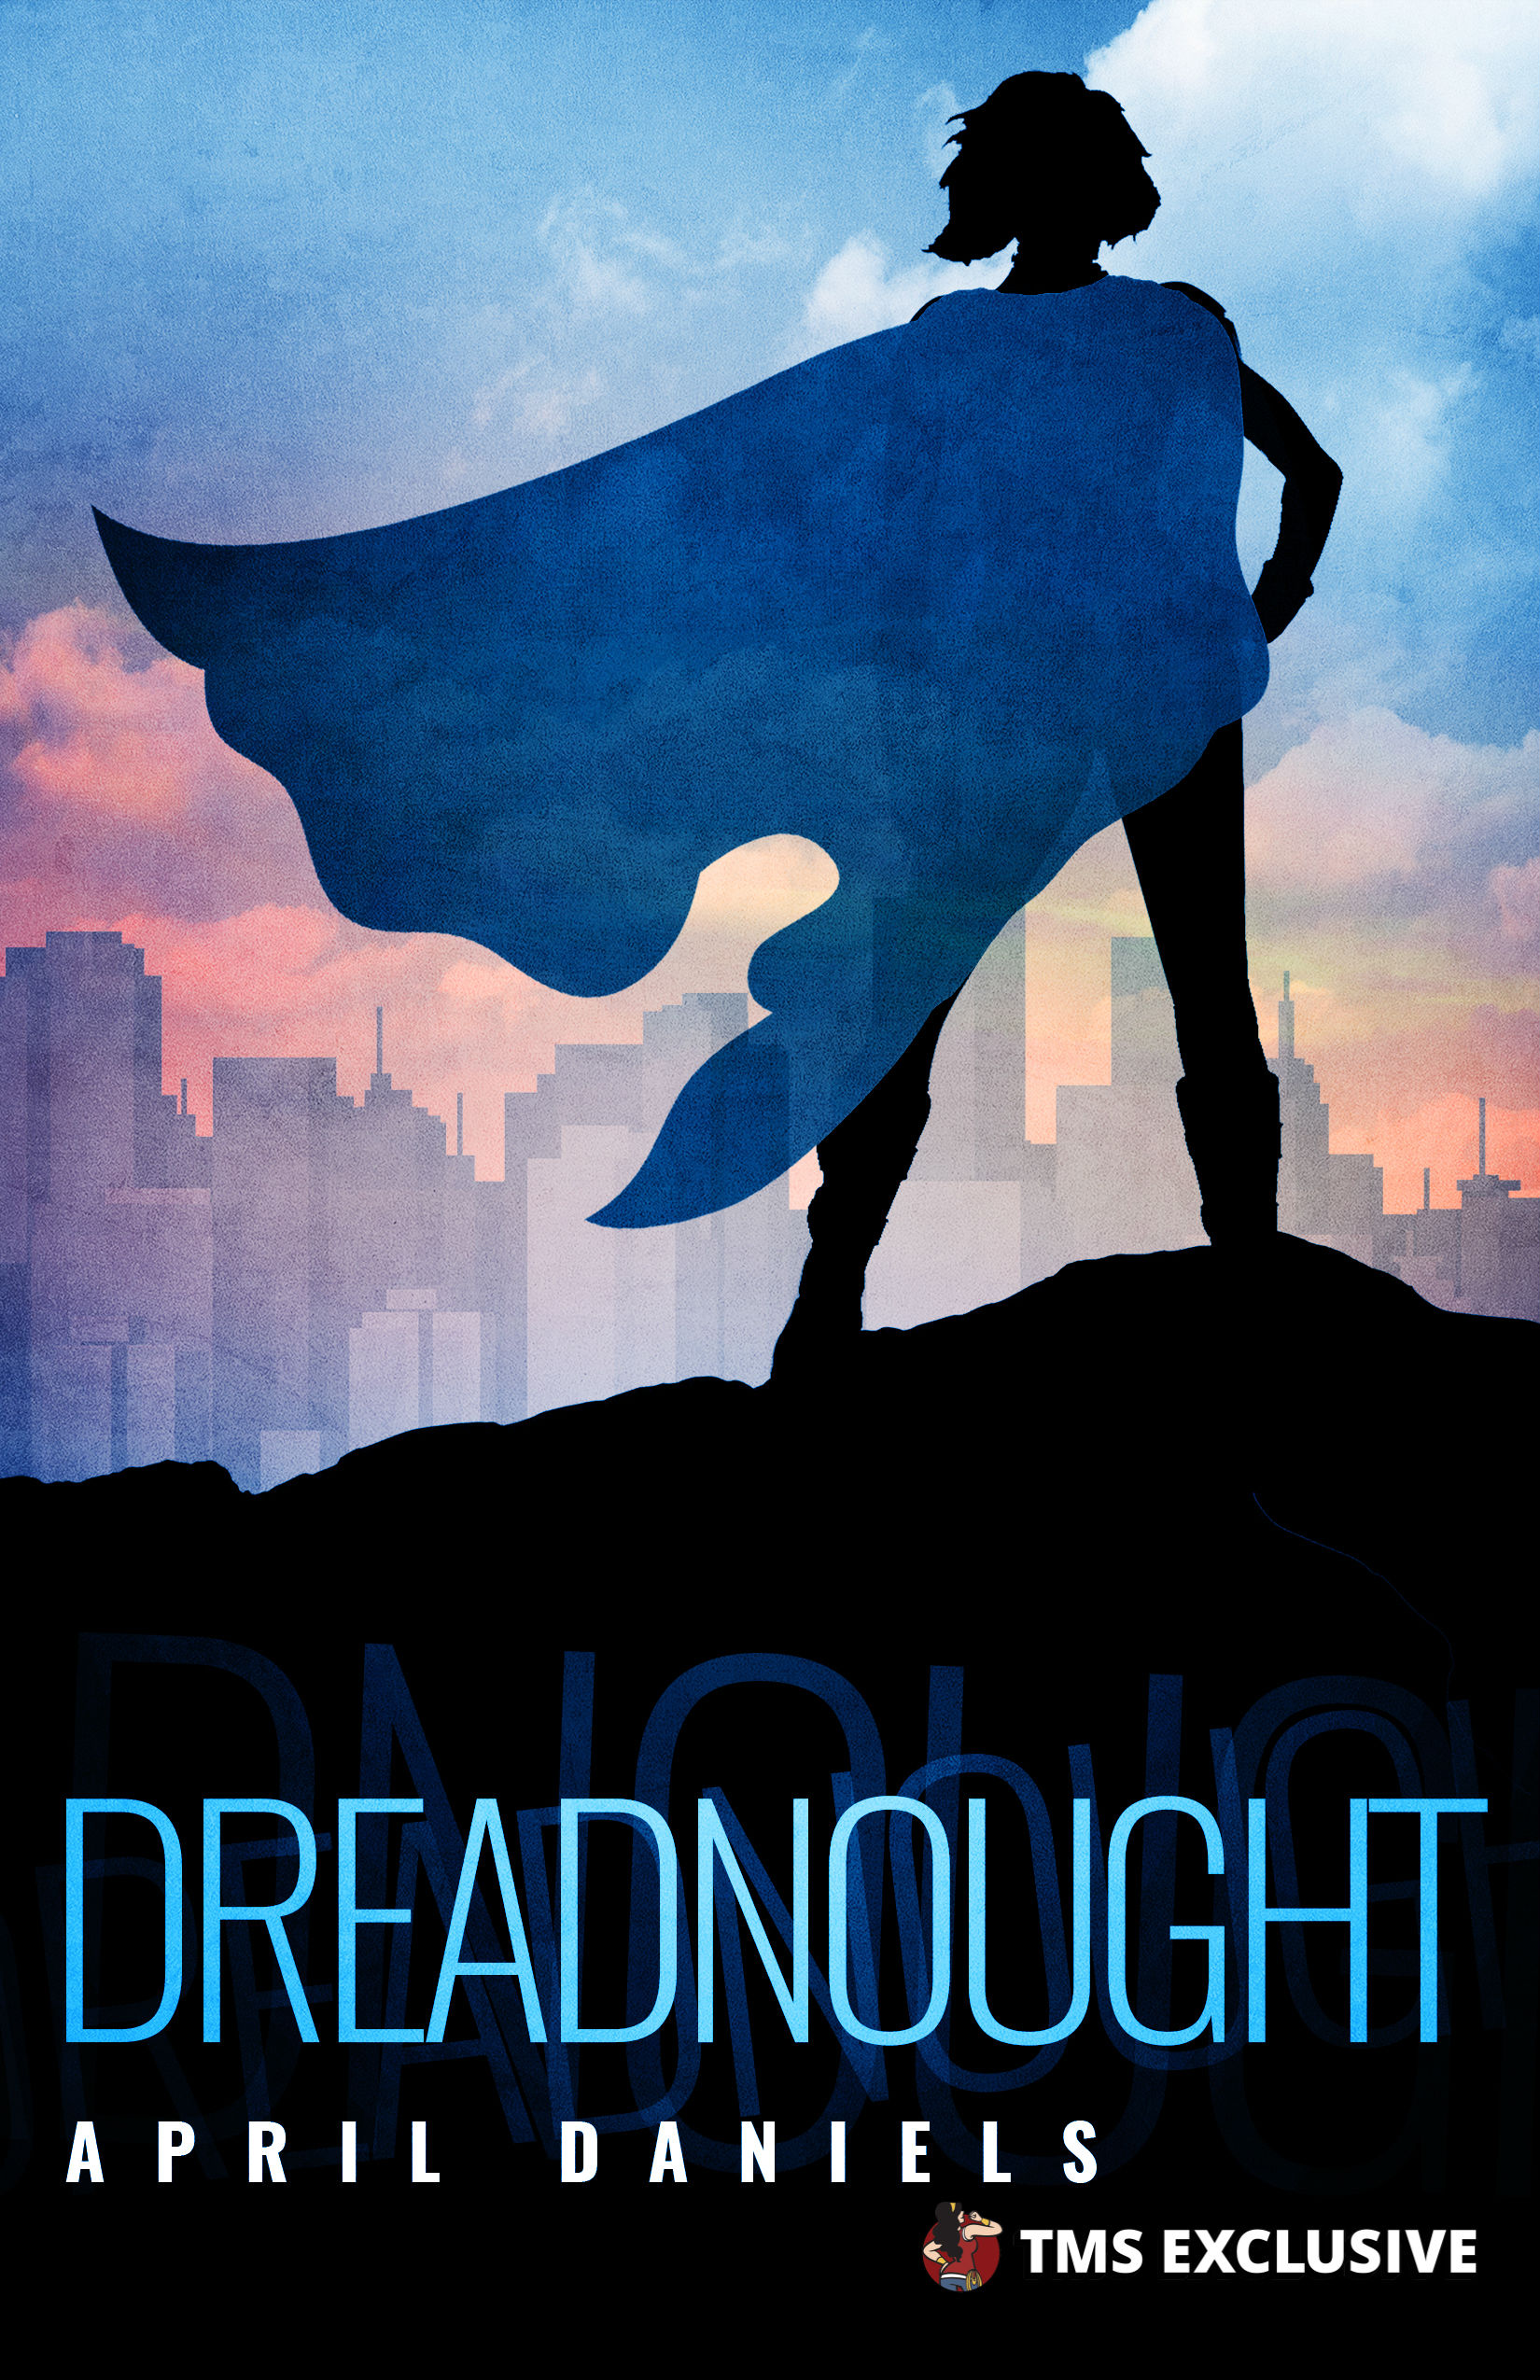 BWW Review: DREADNOUGHT by April Daniels